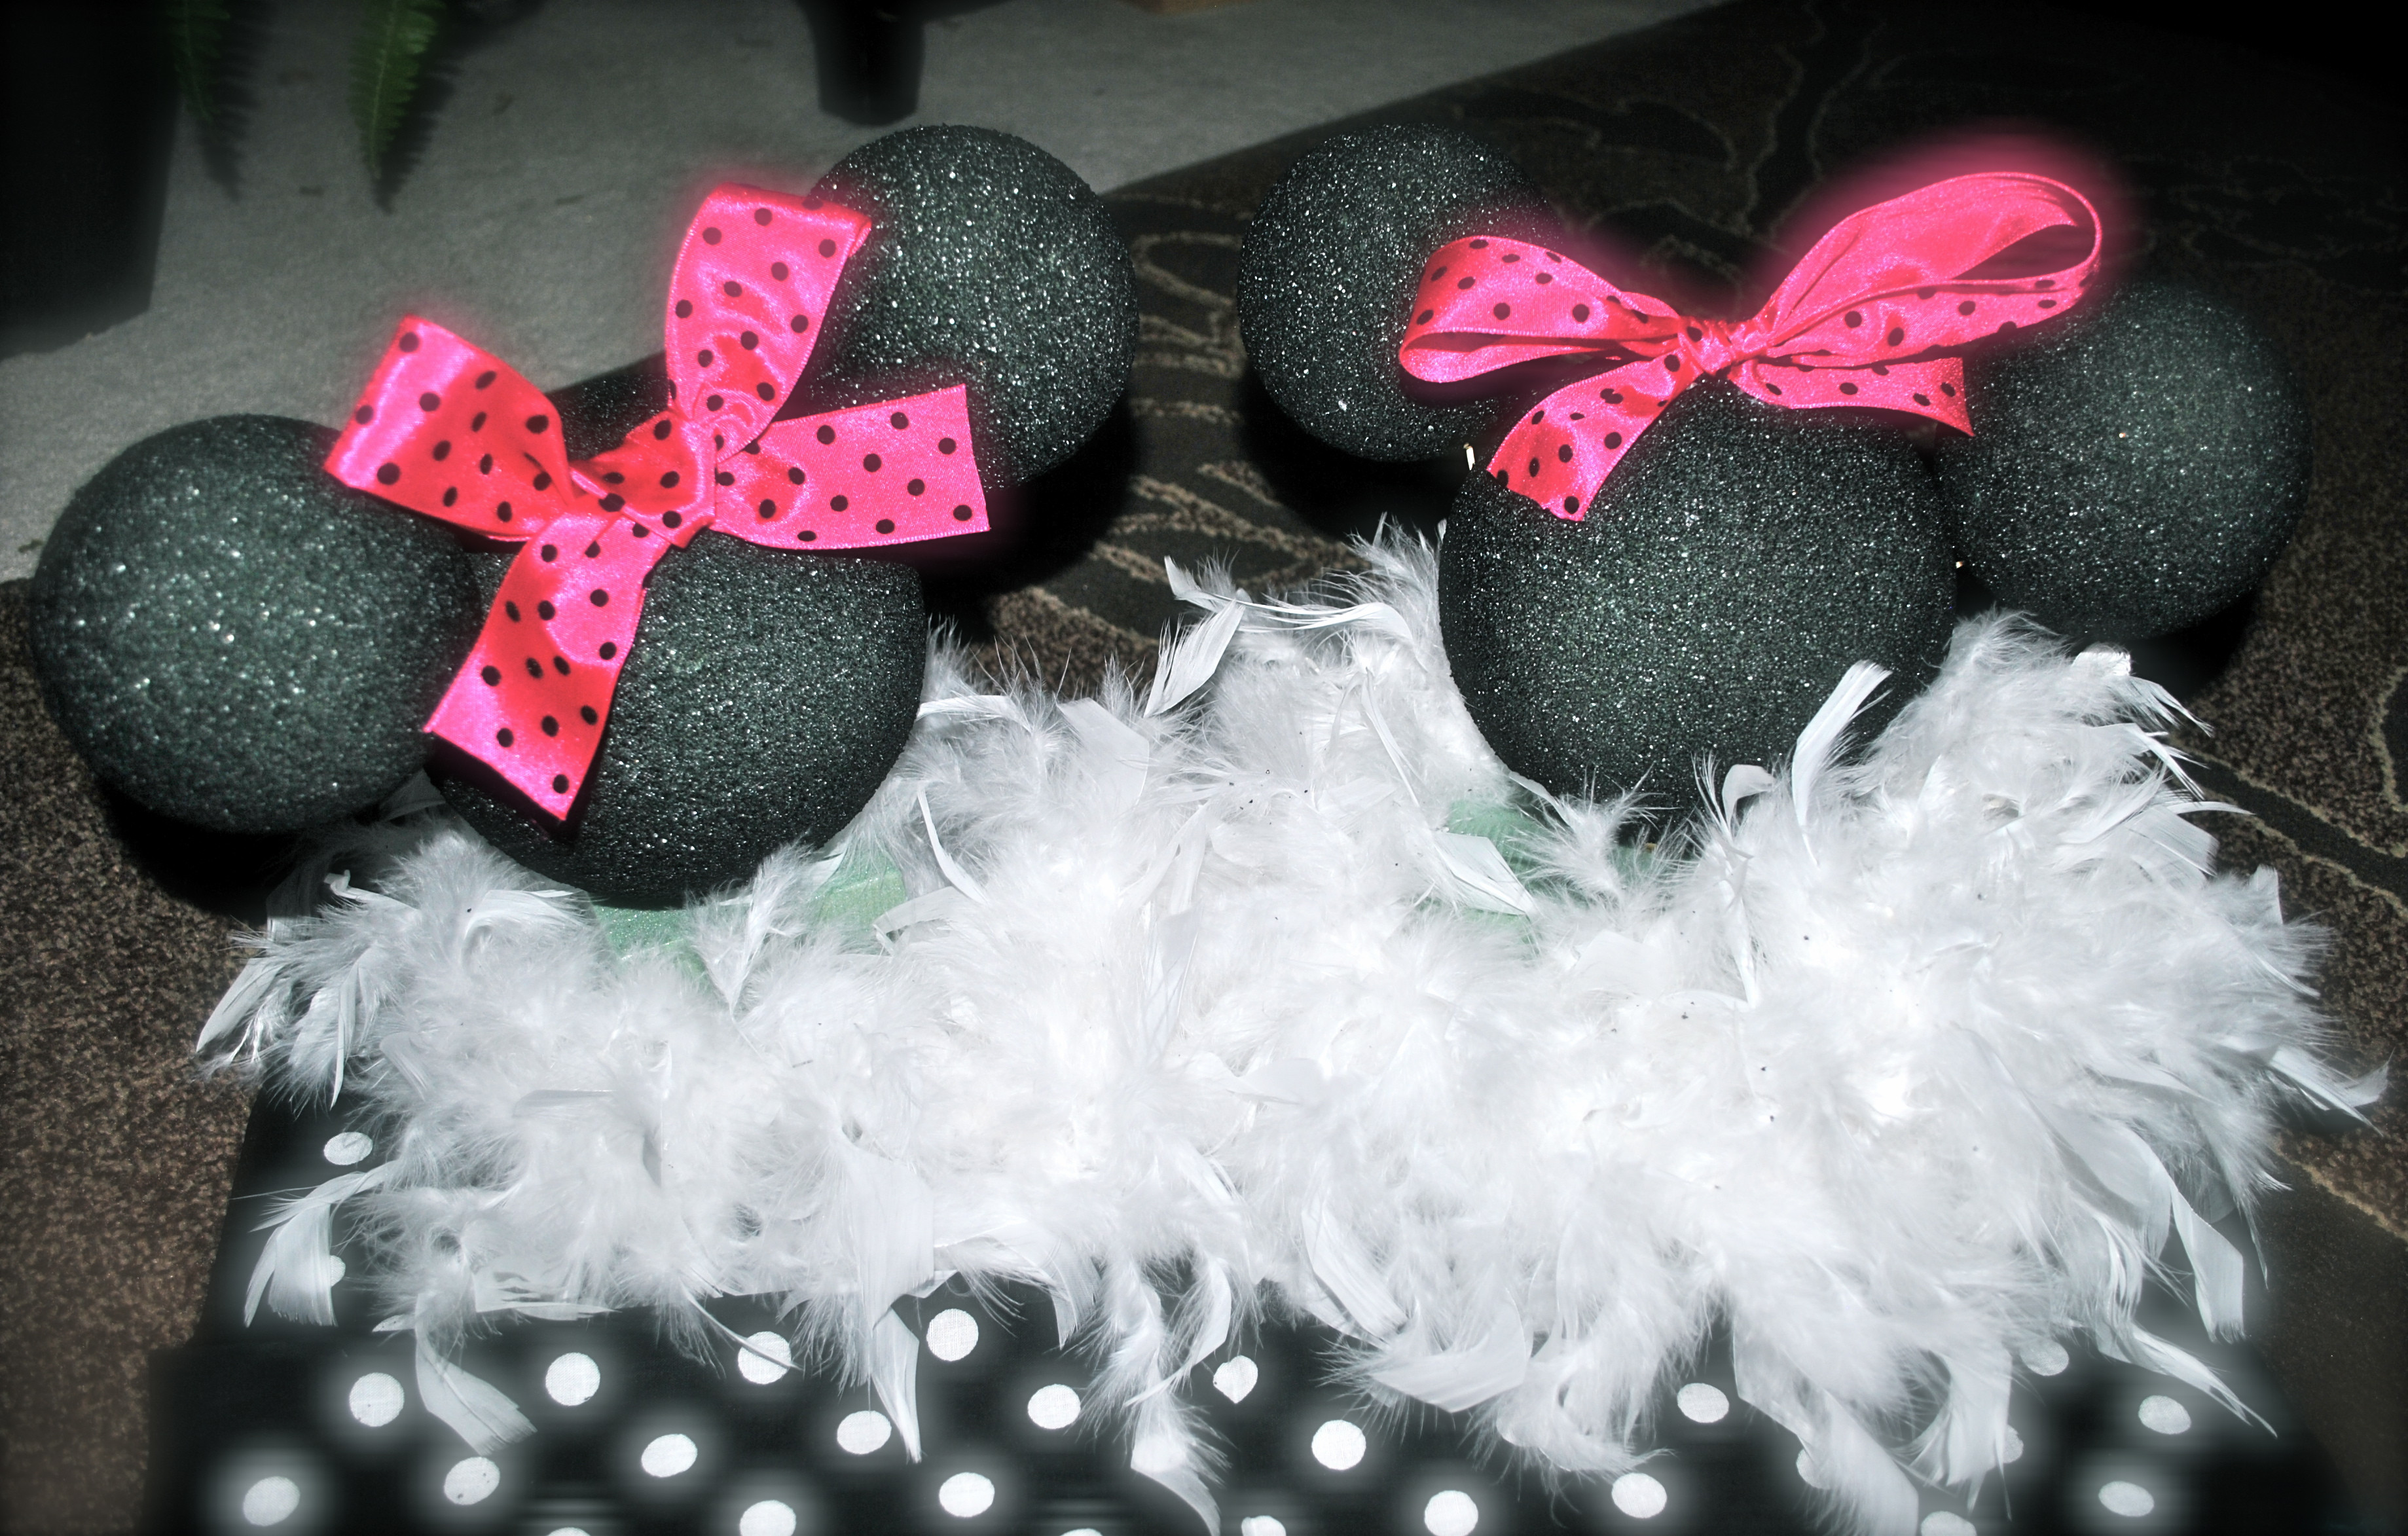 Best ideas about DIY Minnie Mouse Decorations . Save or Pin day 41 crafty diy minnie mouse centerpiece table Now.